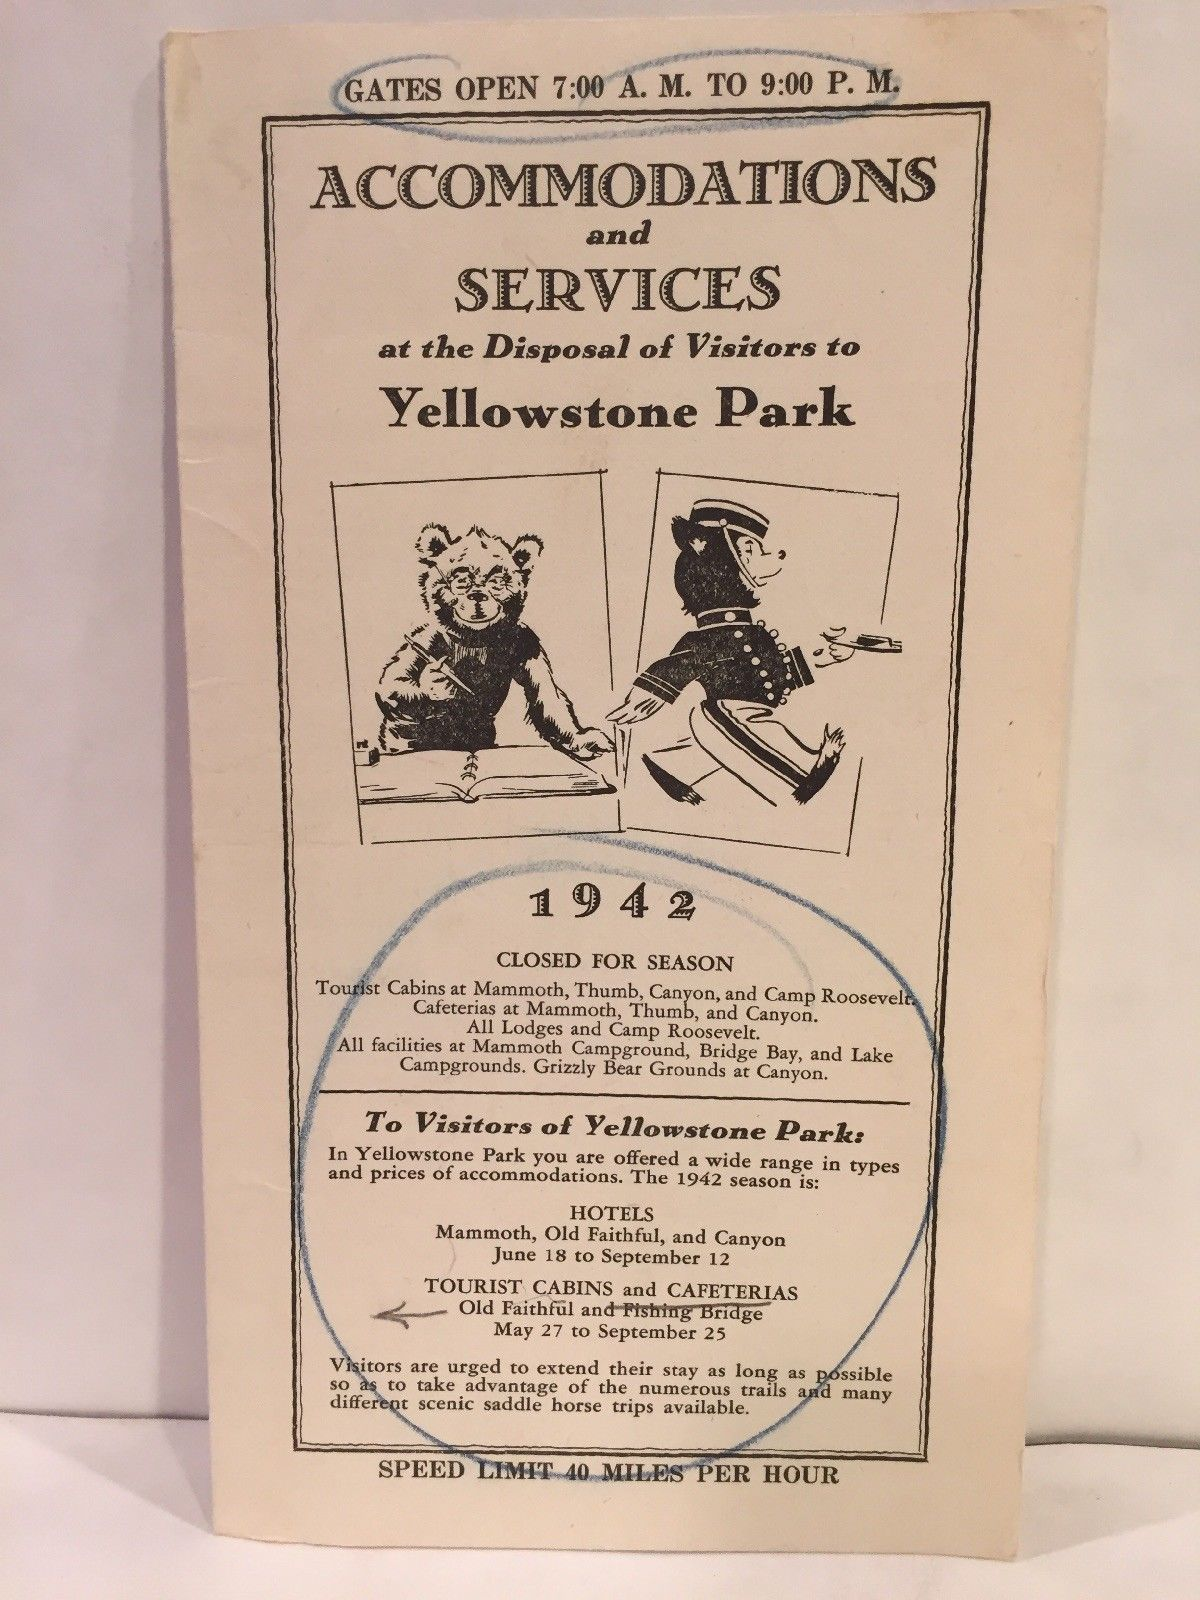 1942 ACCOMMODATIONS AND SERVICES at Yellowstone Park Tourist Cabins Hotels  Map